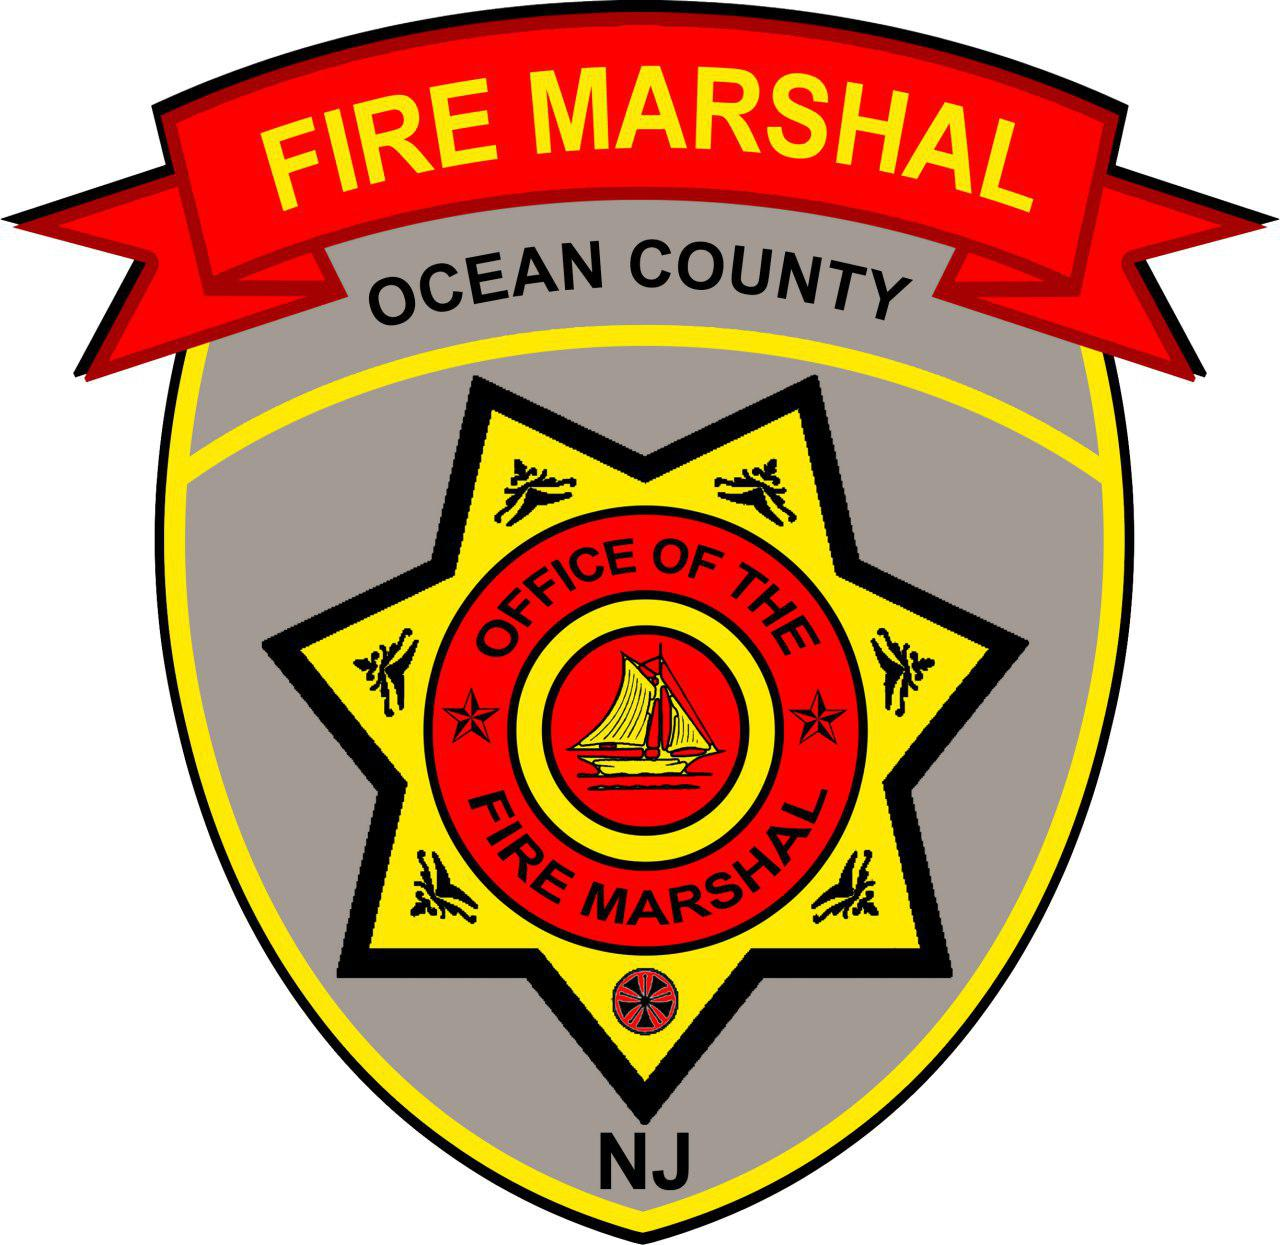 County of Ocean Office of the Fire Marshal